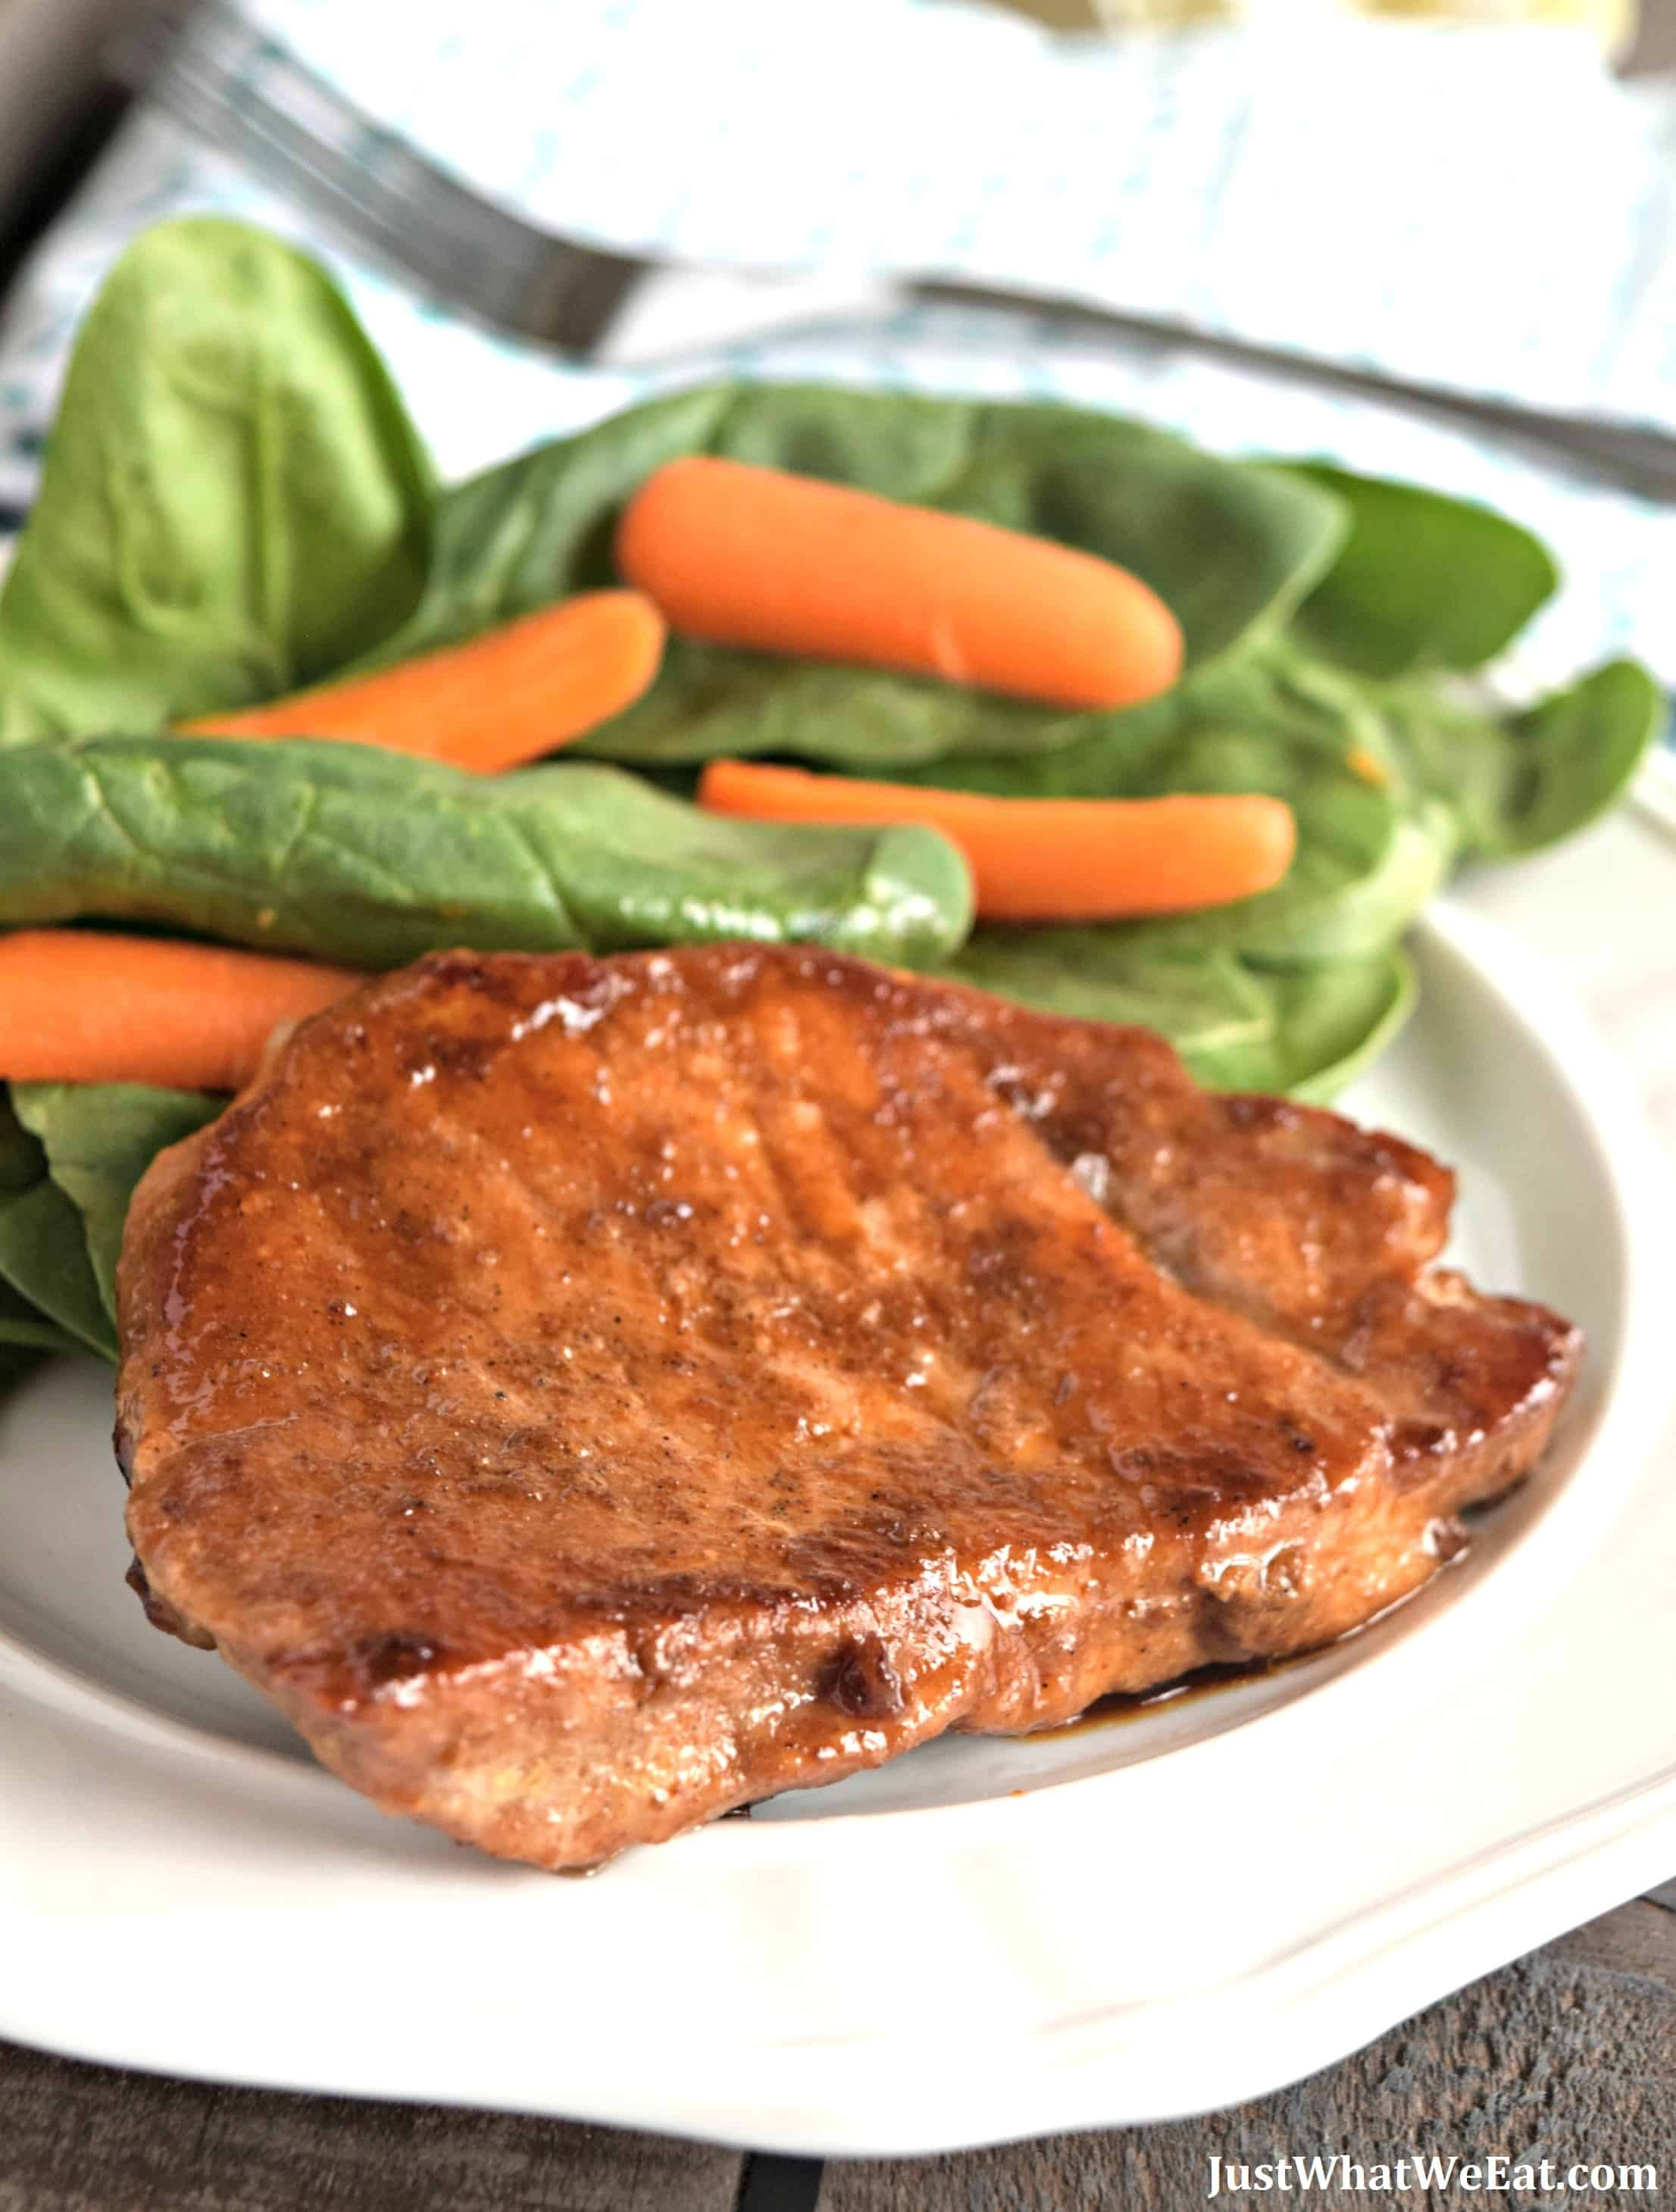 Coconut Sugar Glazed Pork Chops - Gluten Free, Dairy Free, & Refined Sugar Free